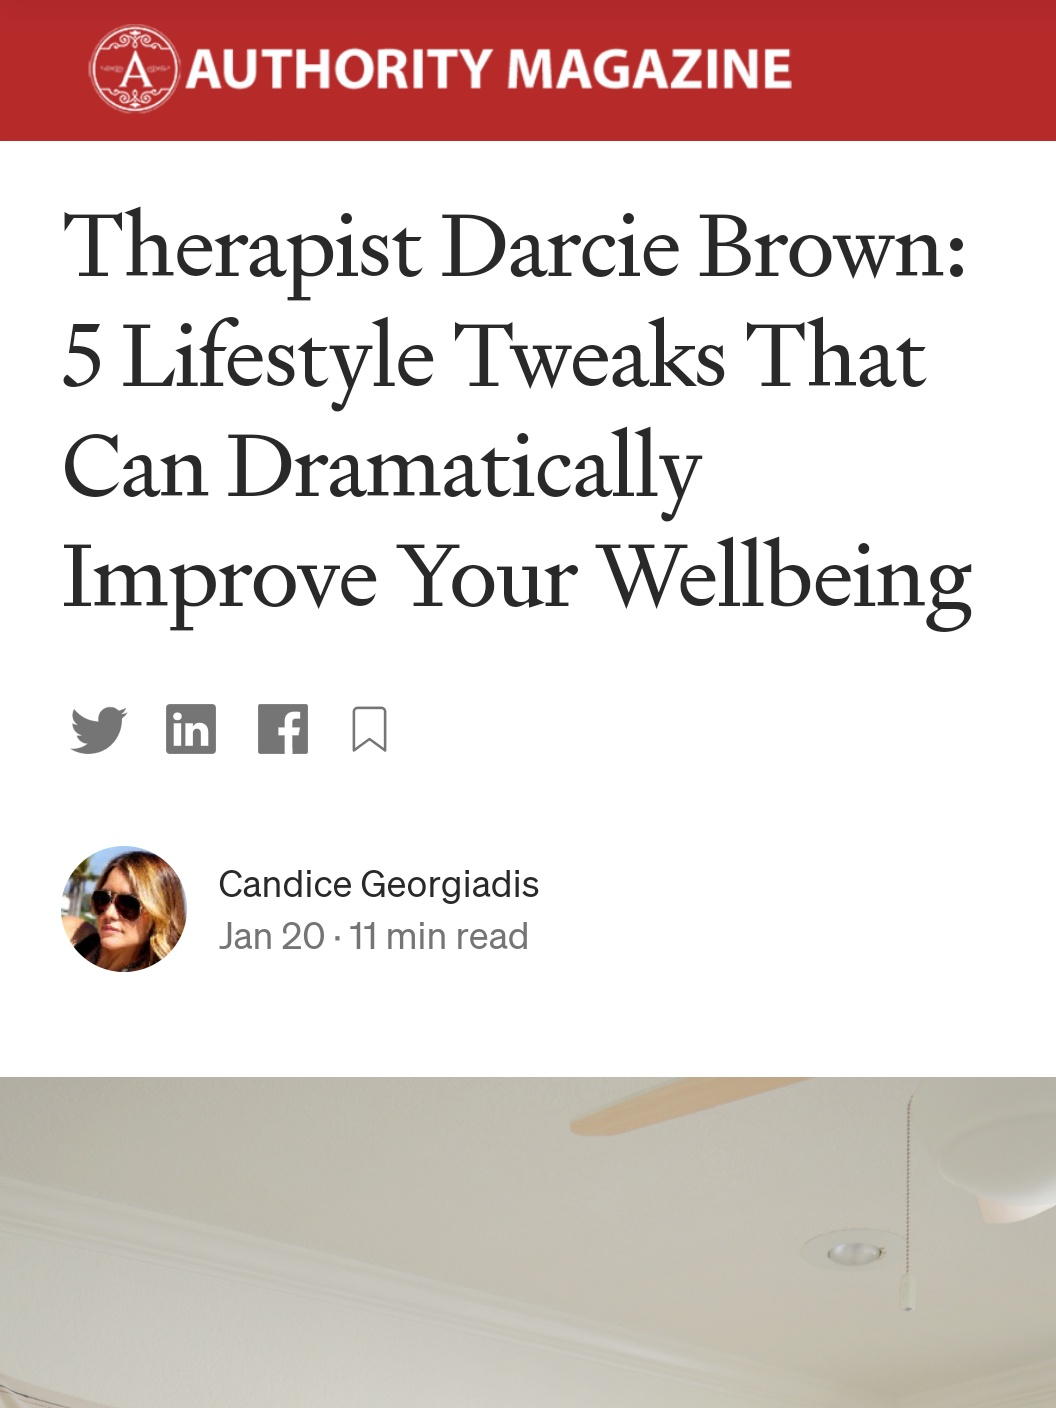 5 Life Style Tweaks that Can Dramatically Improve Your Well-being - Darcie Brown, LMFT on Authority Magazine